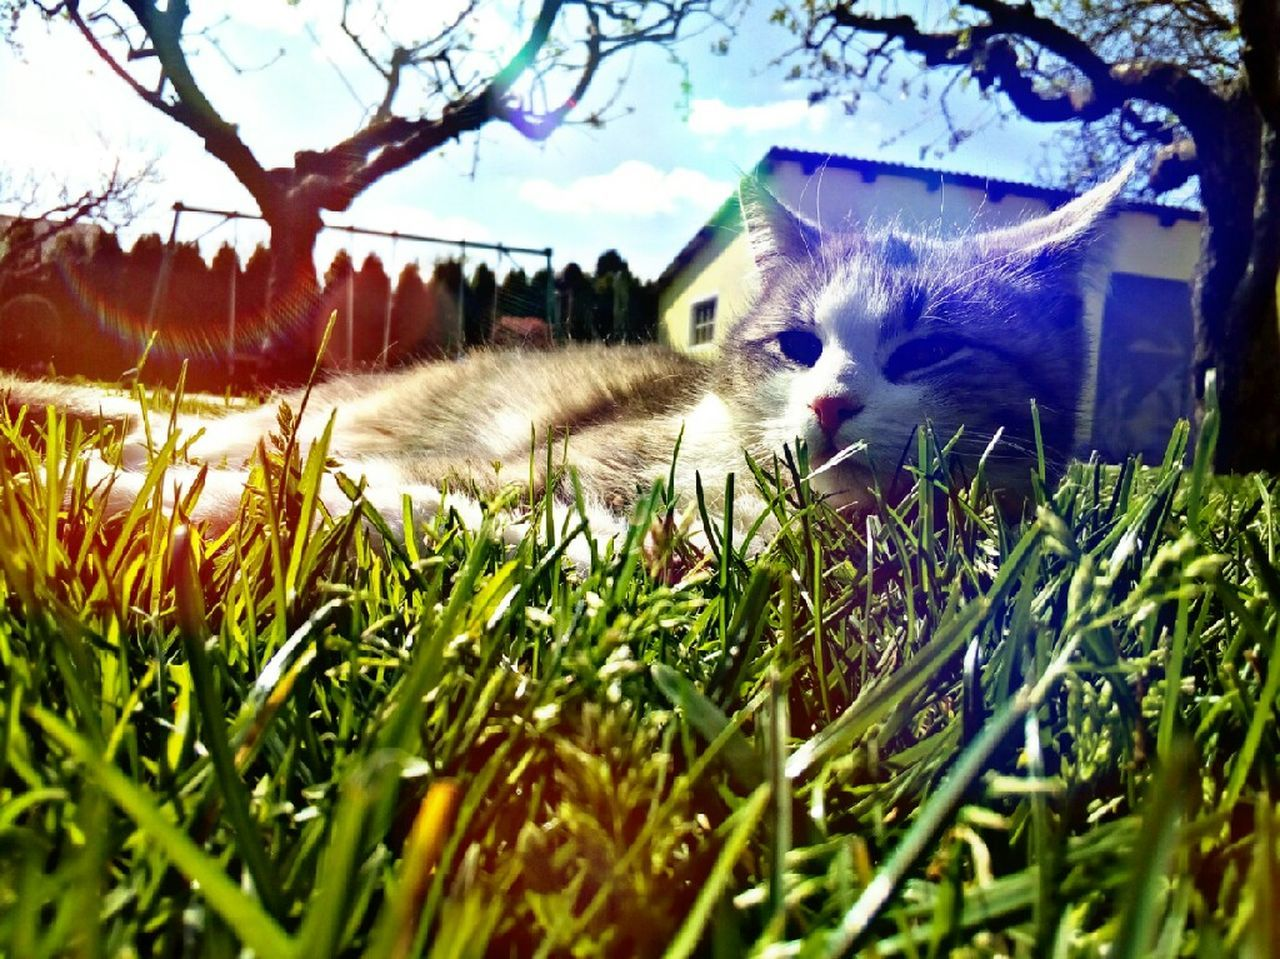 Grass Pets Nature Animal Themes Field Sky Day Beauty In Nature One Animal Outdoors Mammal Growth Close-up Sunlight